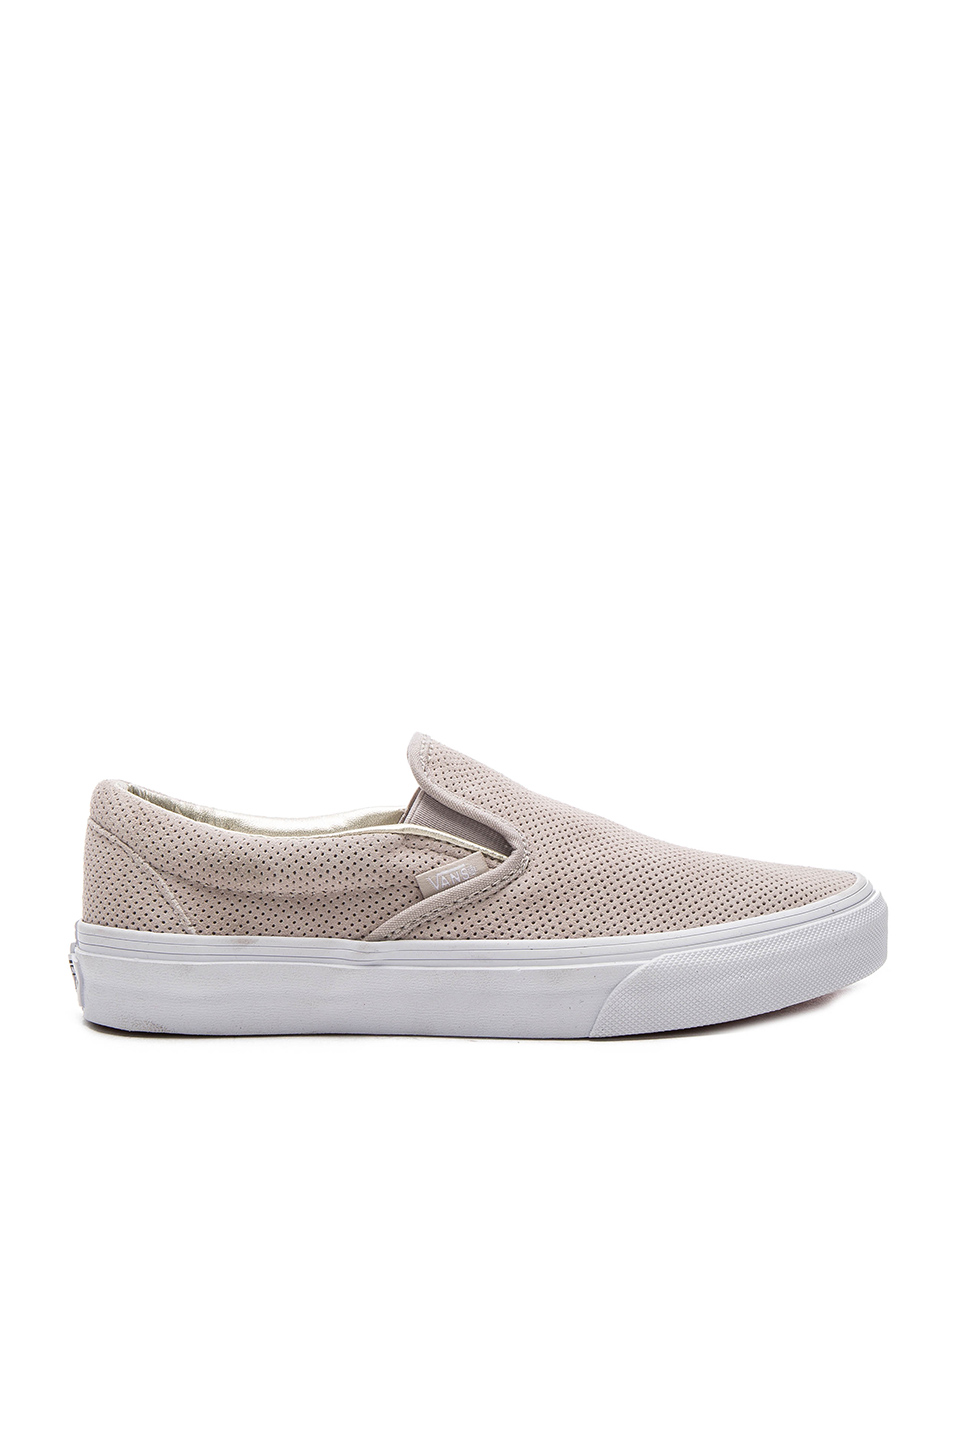 Vans Classic Slip-On Sneaker In Silver Cloud   True White  23a408f4a